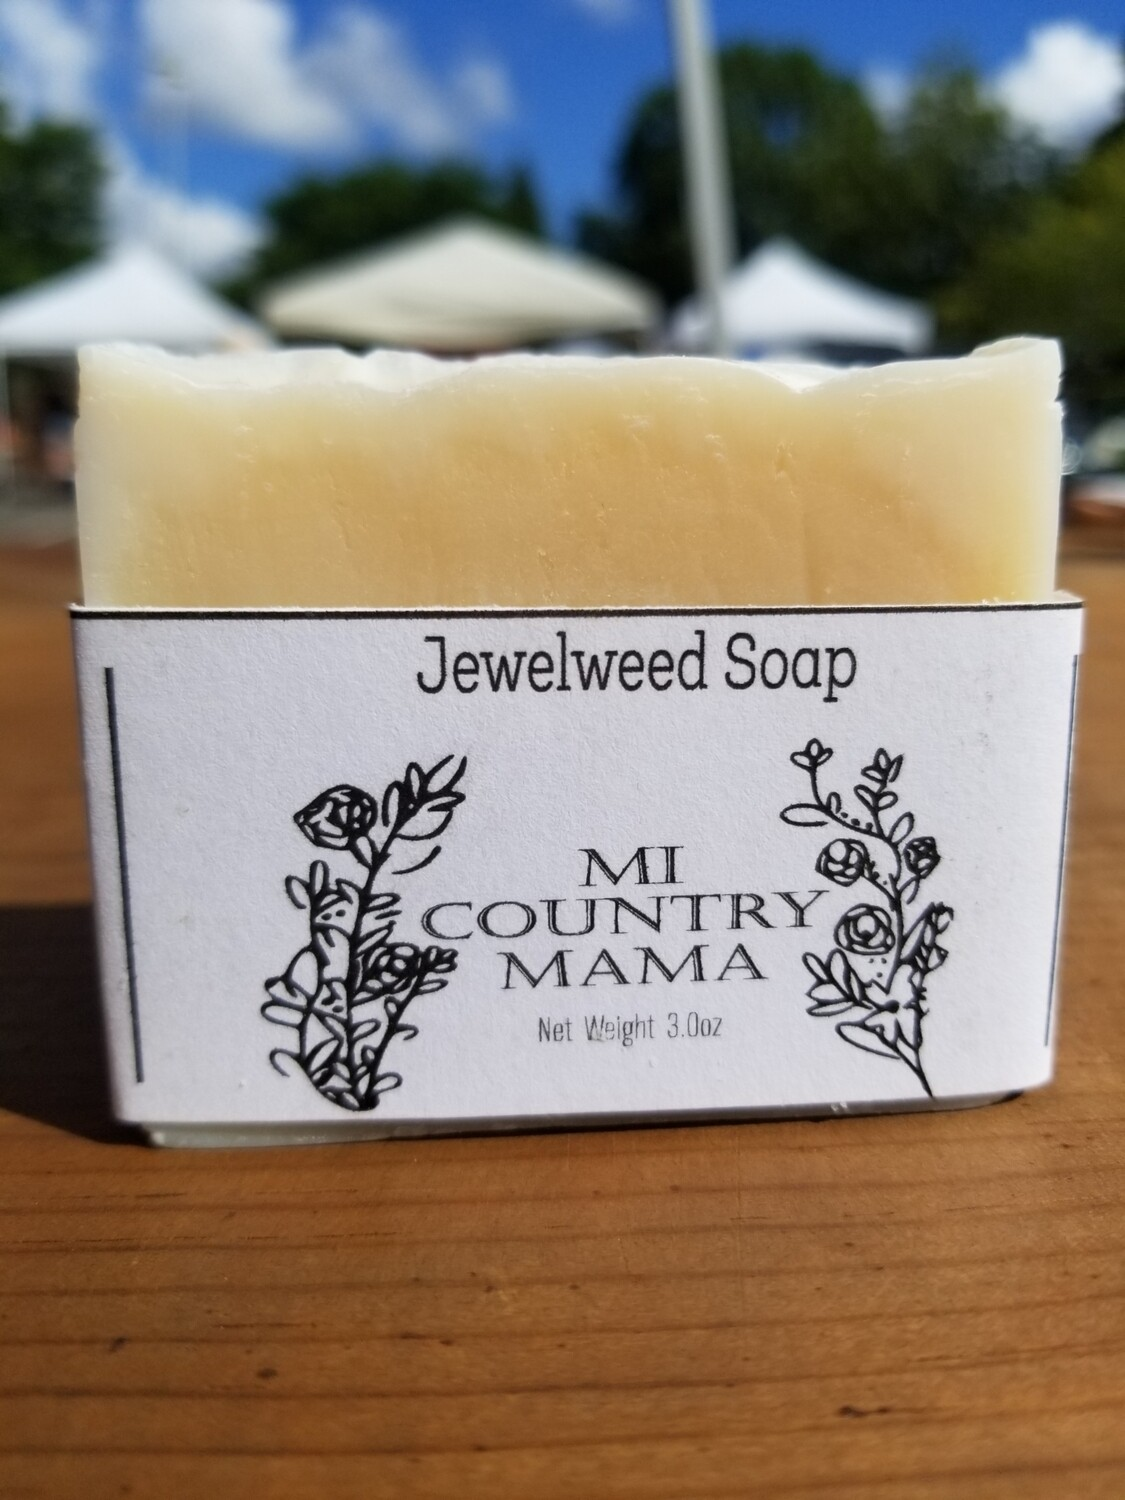 Jewelweed Soap 1oz